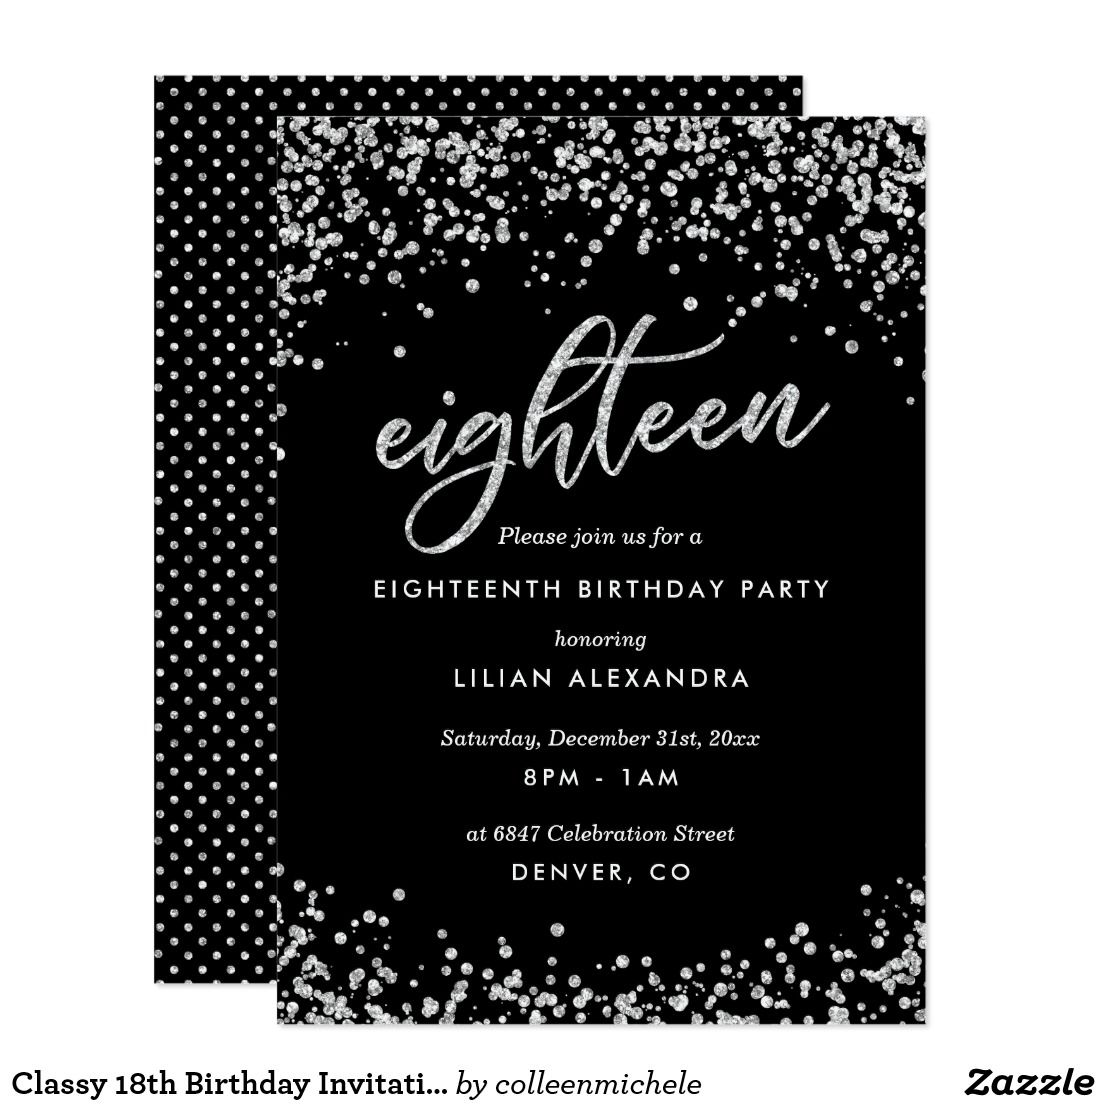 Classy 18th Birthday Invitation Sparkly Confetti Card